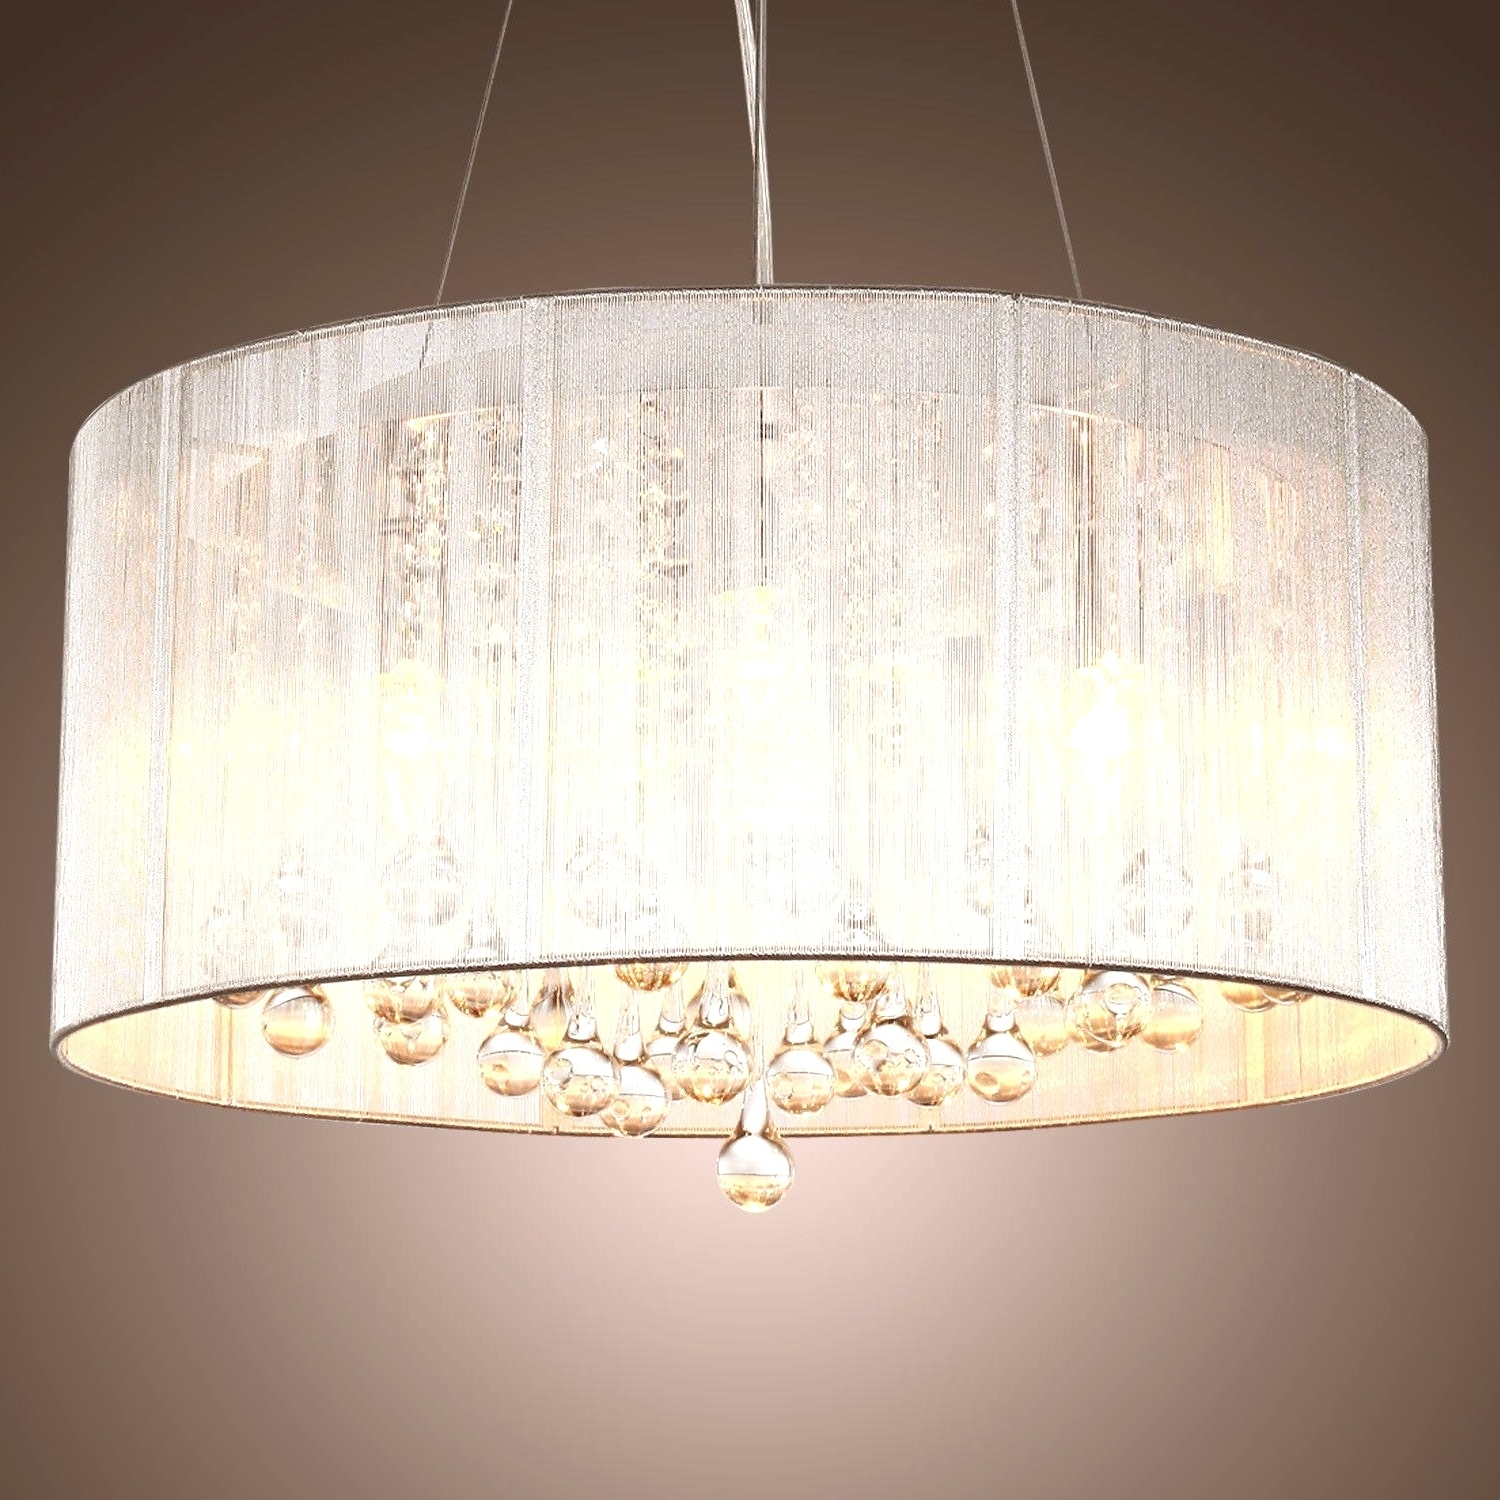 Clip On Chandeliers Inside Recent Chandeliers Design : Magnificent Best Clip On Drum Chandelier Shades (View 16 of 20)